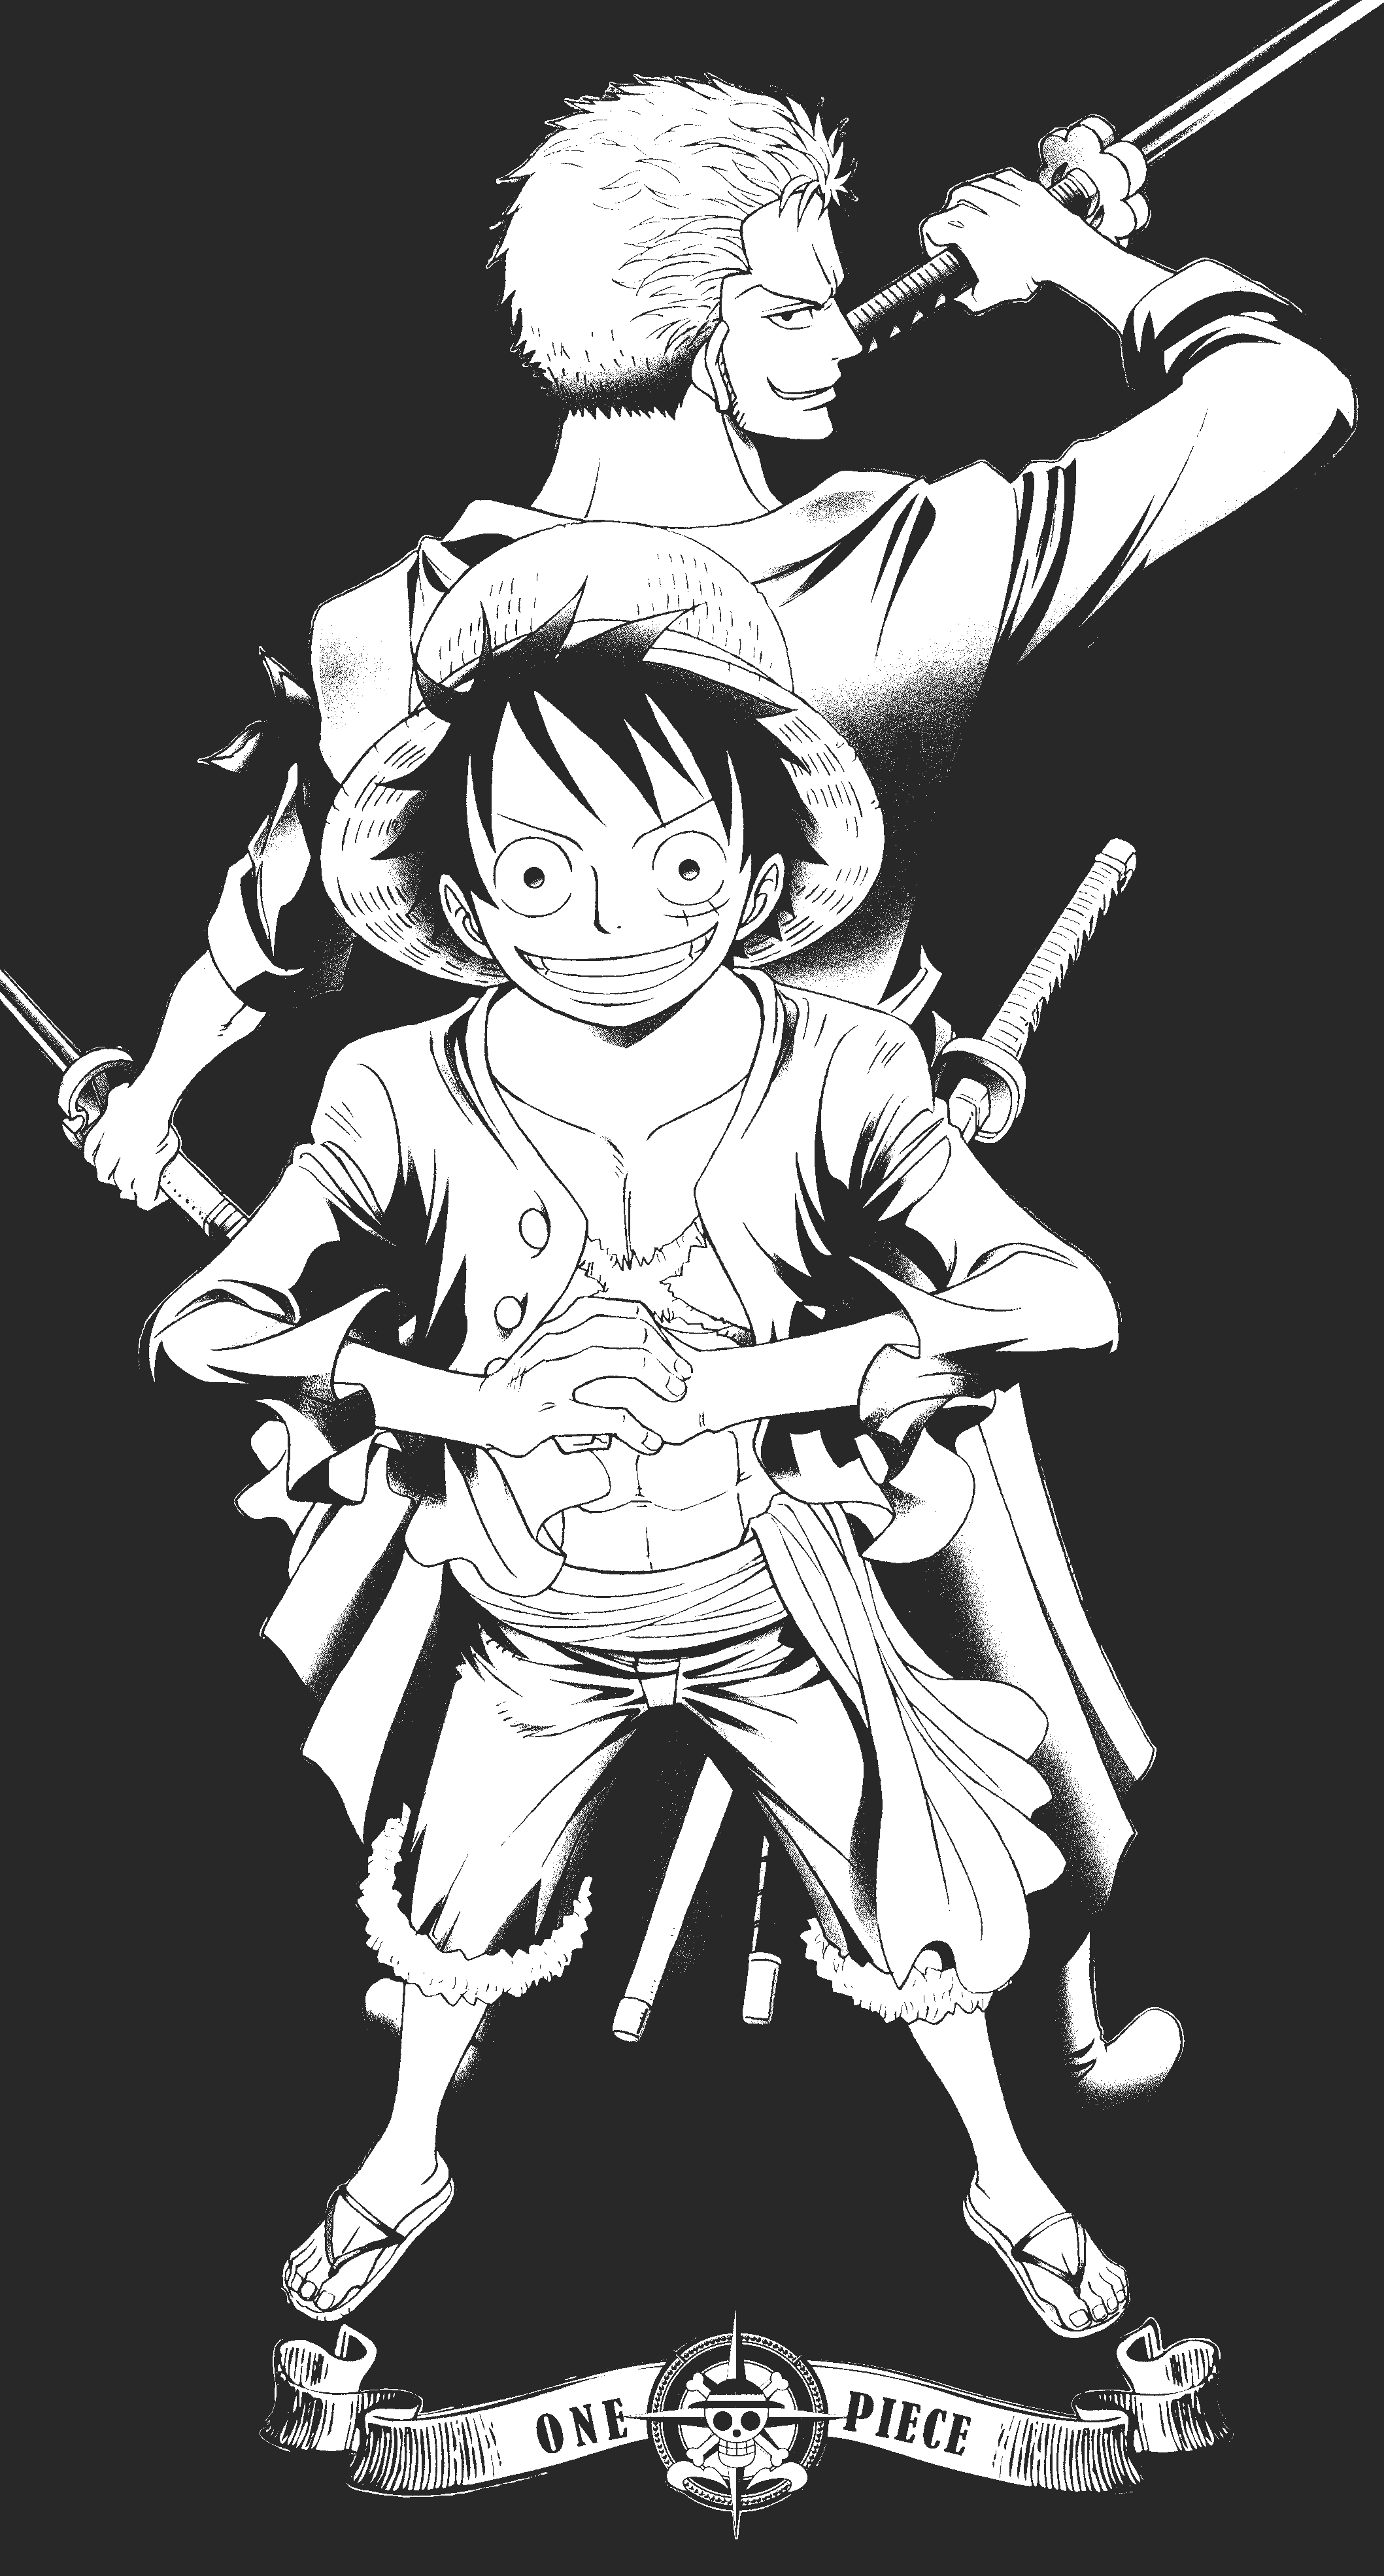 ONE PIECE · download ONE PIECE image